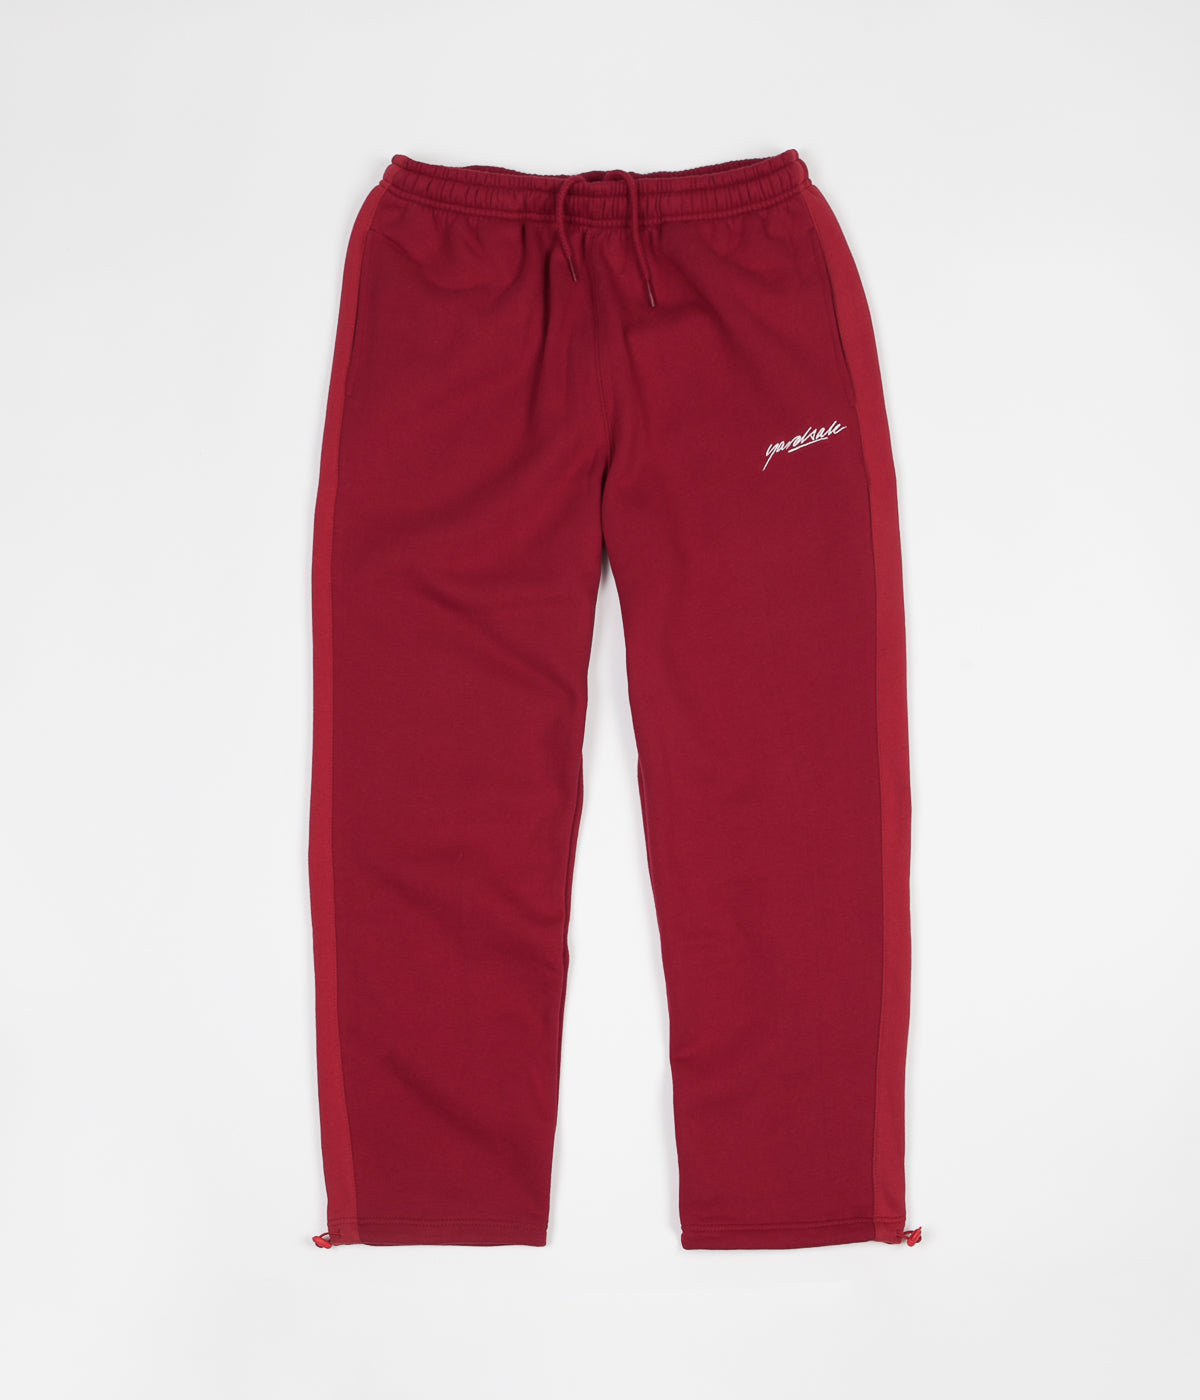 Yardsale 2Tone Tracksuit Sweatpants - Red / Dark Red